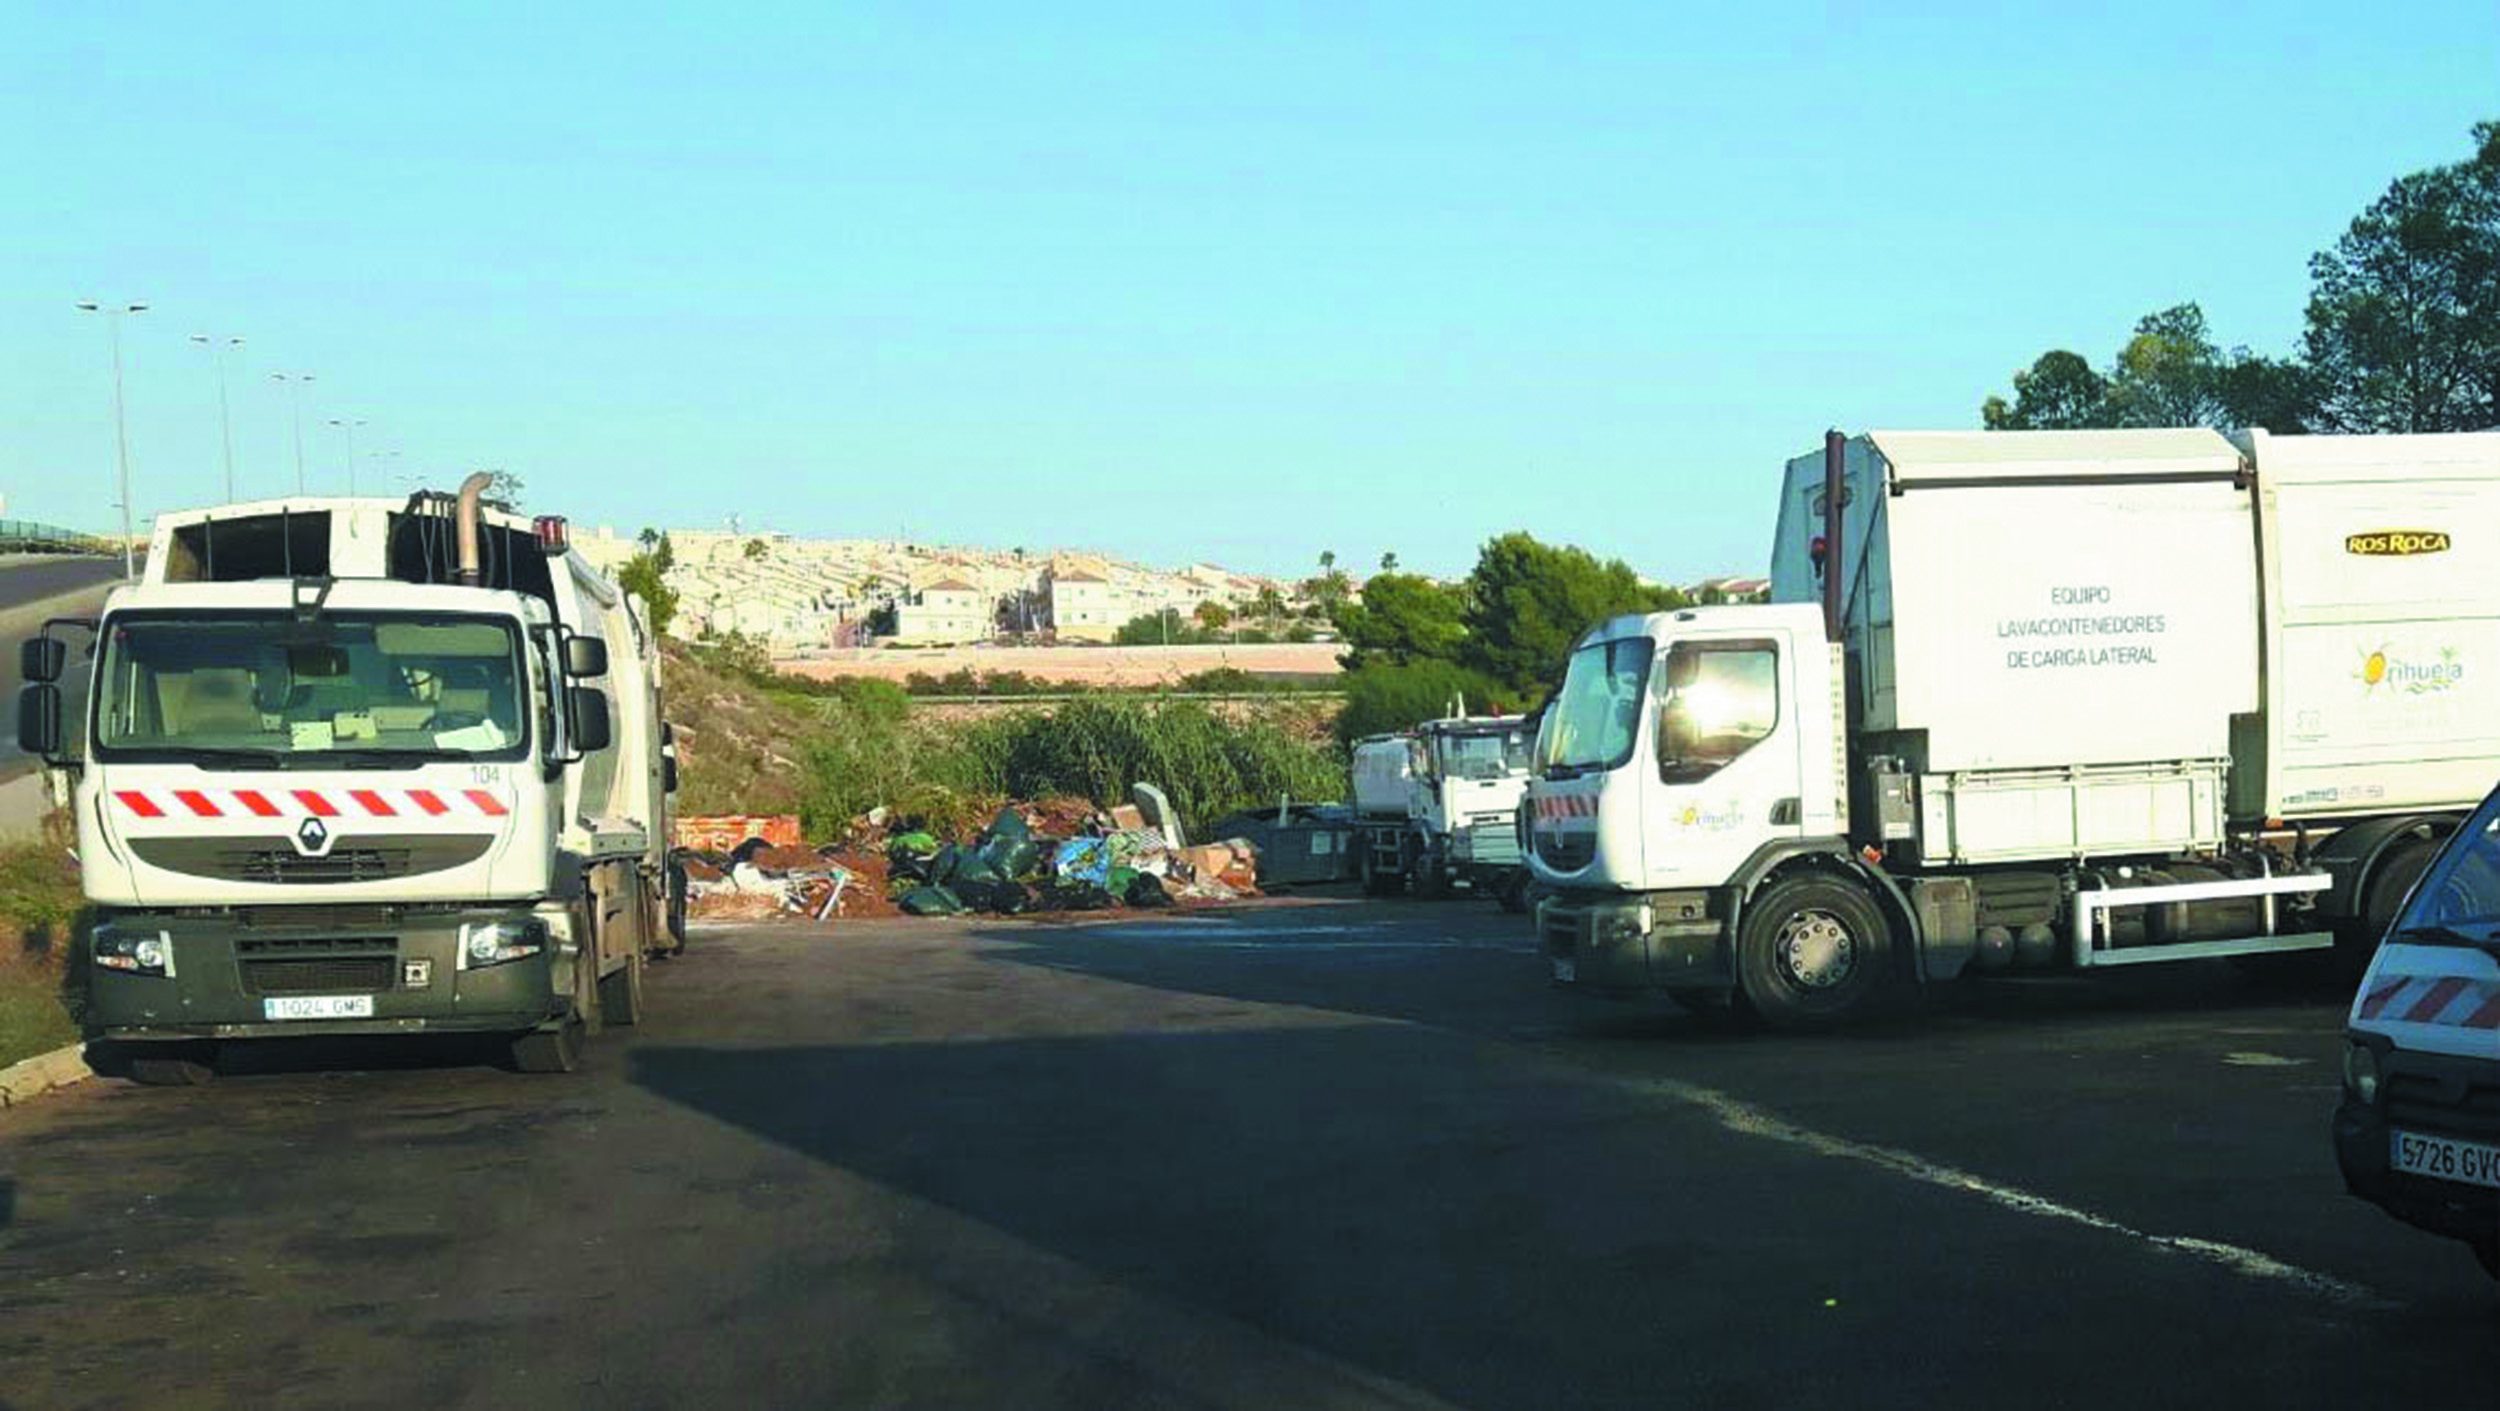 The Orihuela Costa Depot where drivers are constantly driving through pools of urine